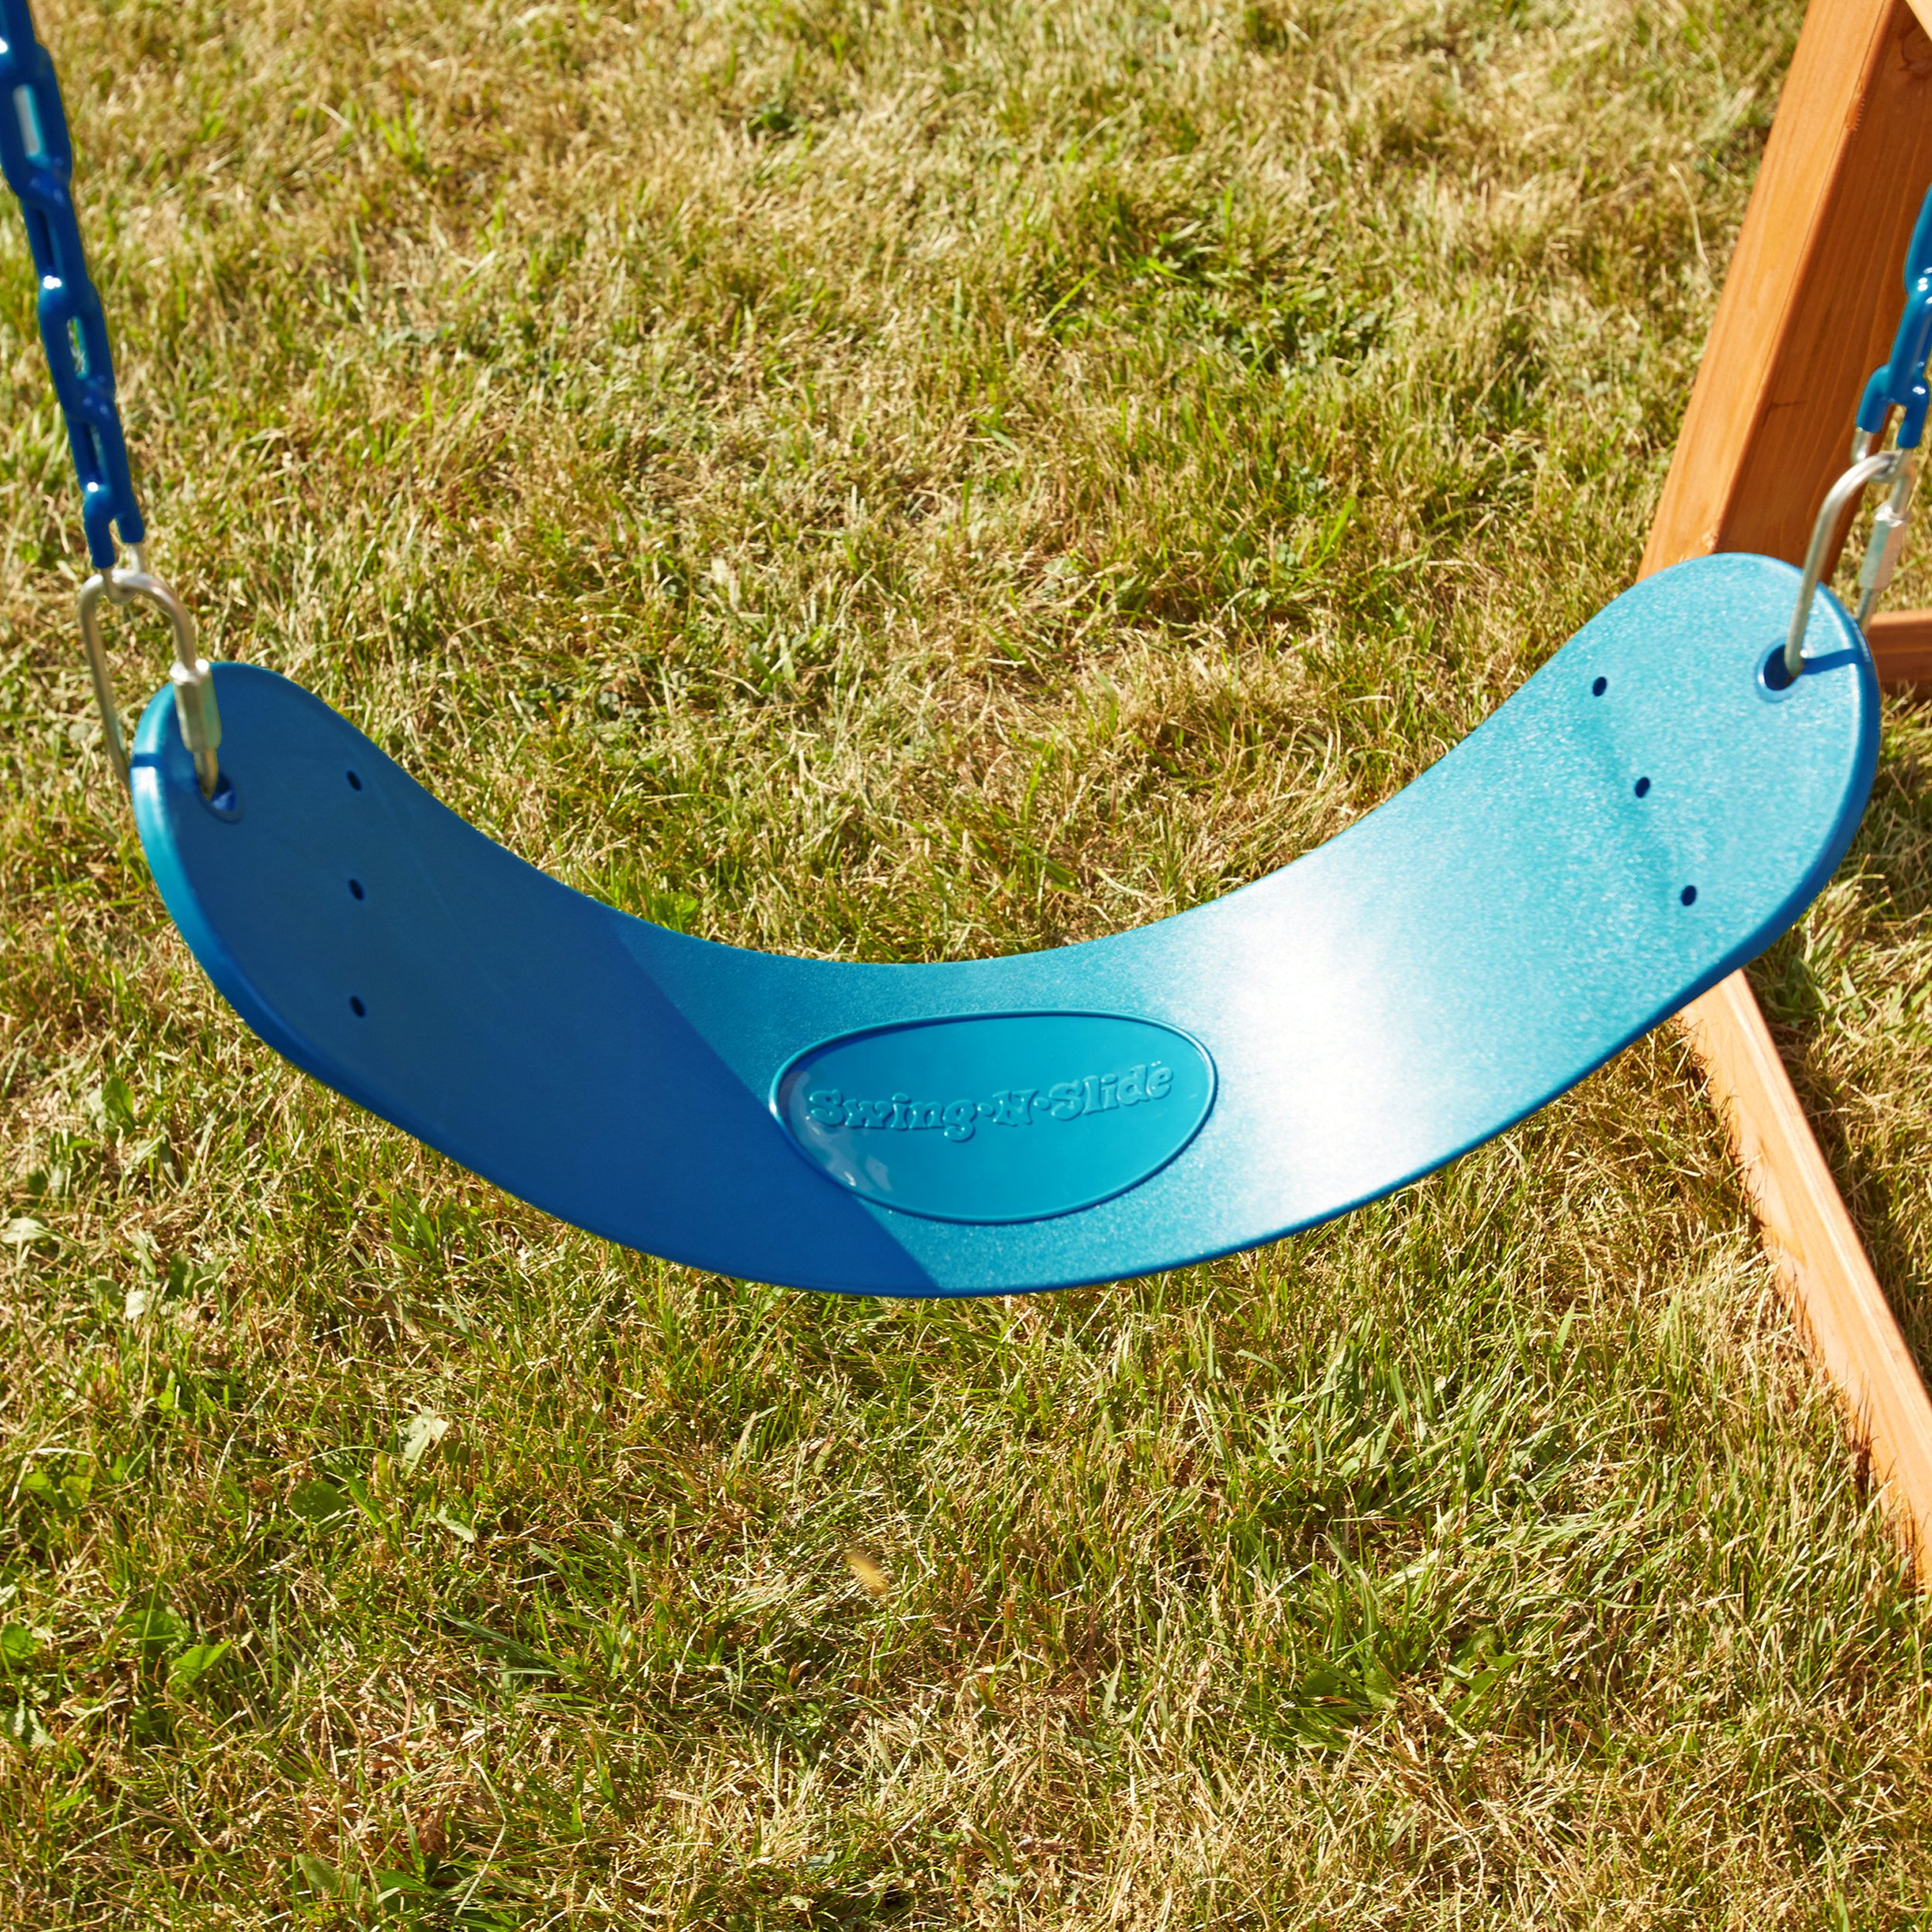 Swing Seat and Ring/Trapeze Bundle - Includes 2 Blue Belted Swing Seats and a Trapeze Combo Swing for Swing Sets, Play Sets, etc. by Swing-N-Slide (Image #3)